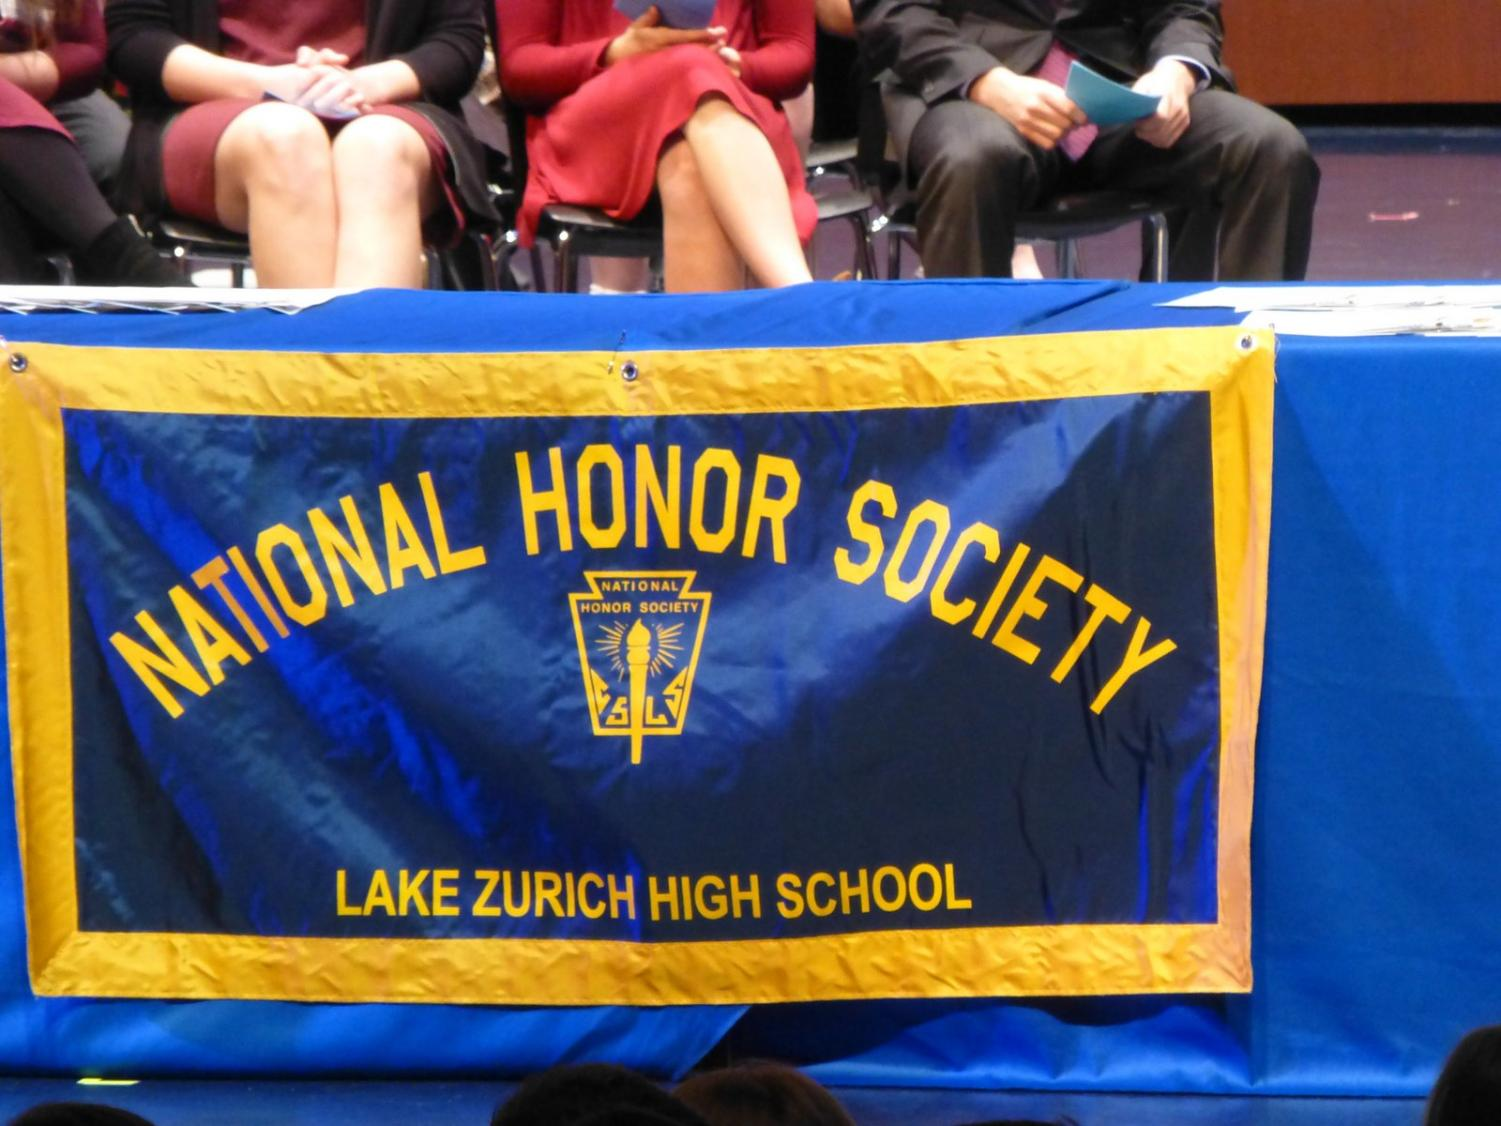 National Honors Society will undergo a change allowing juniors and seniors to join. the change will take effect before the 2018-2019 school year